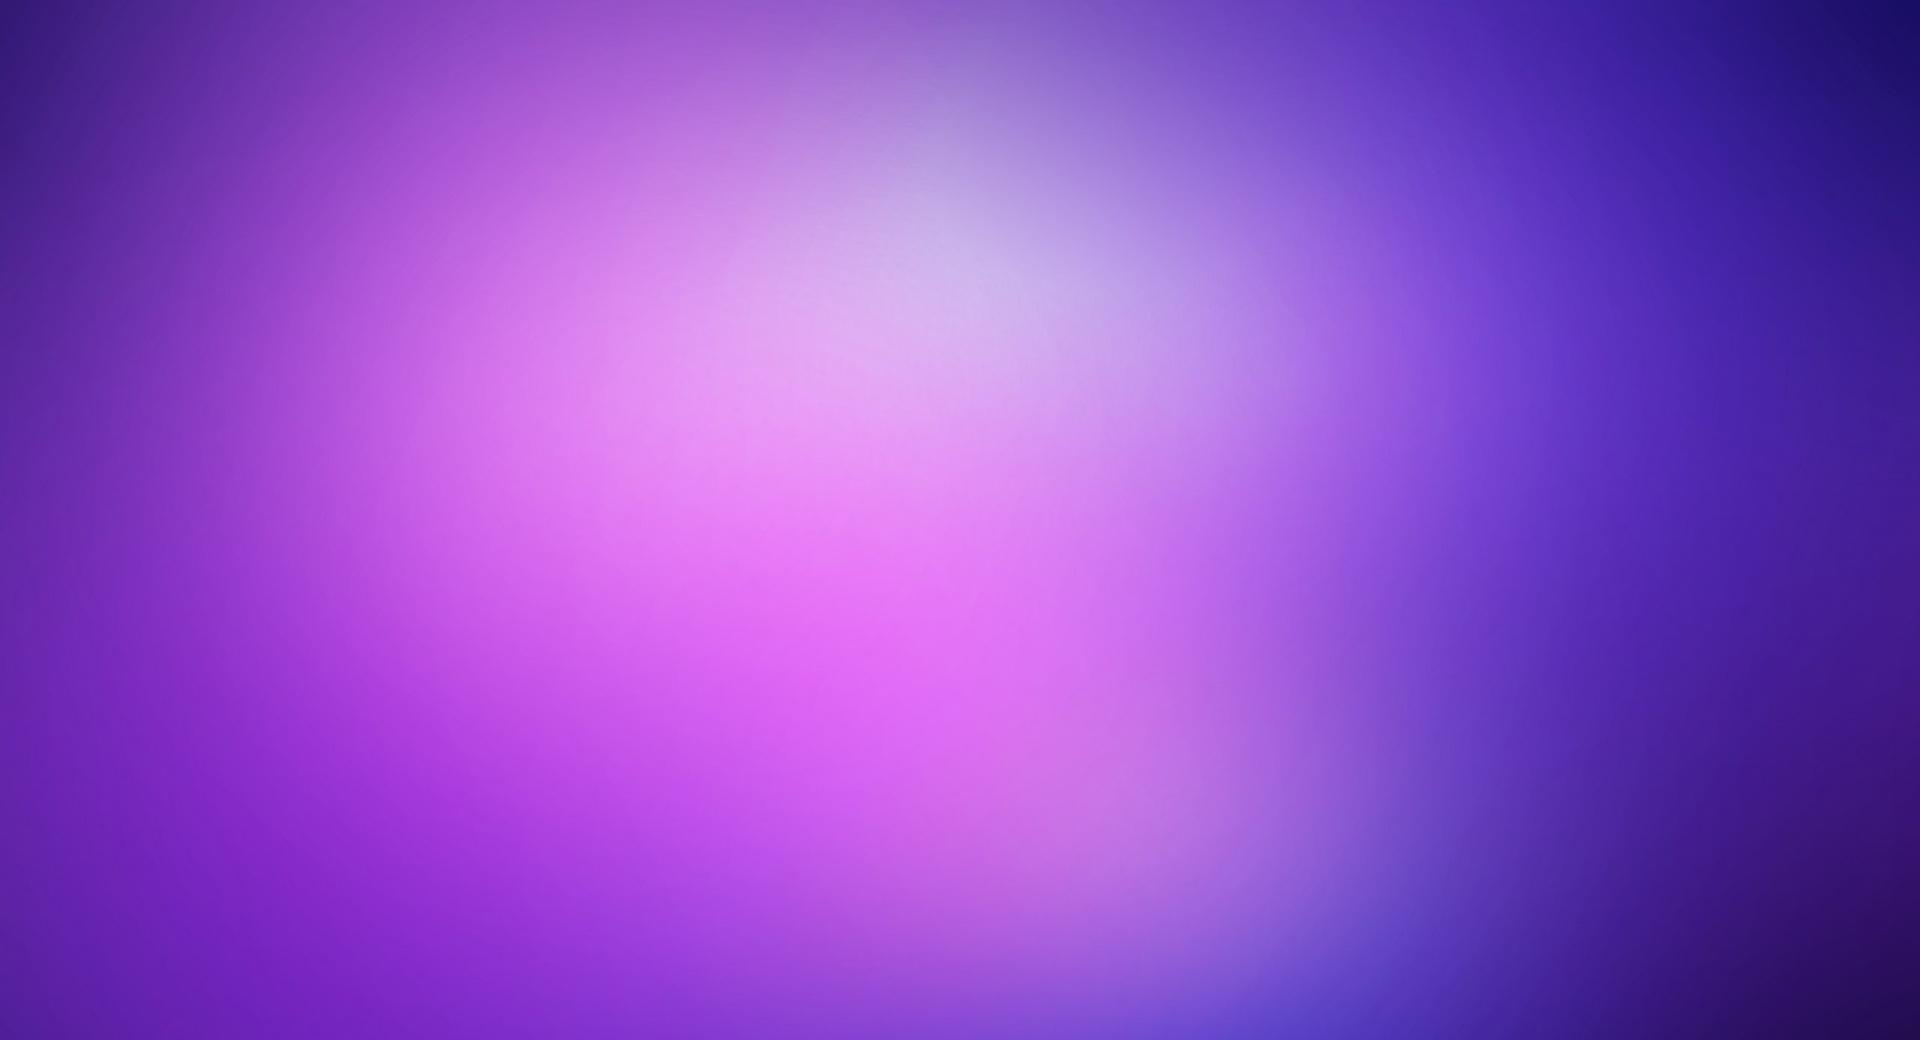 Purple Abstraction wallpapers HD quality